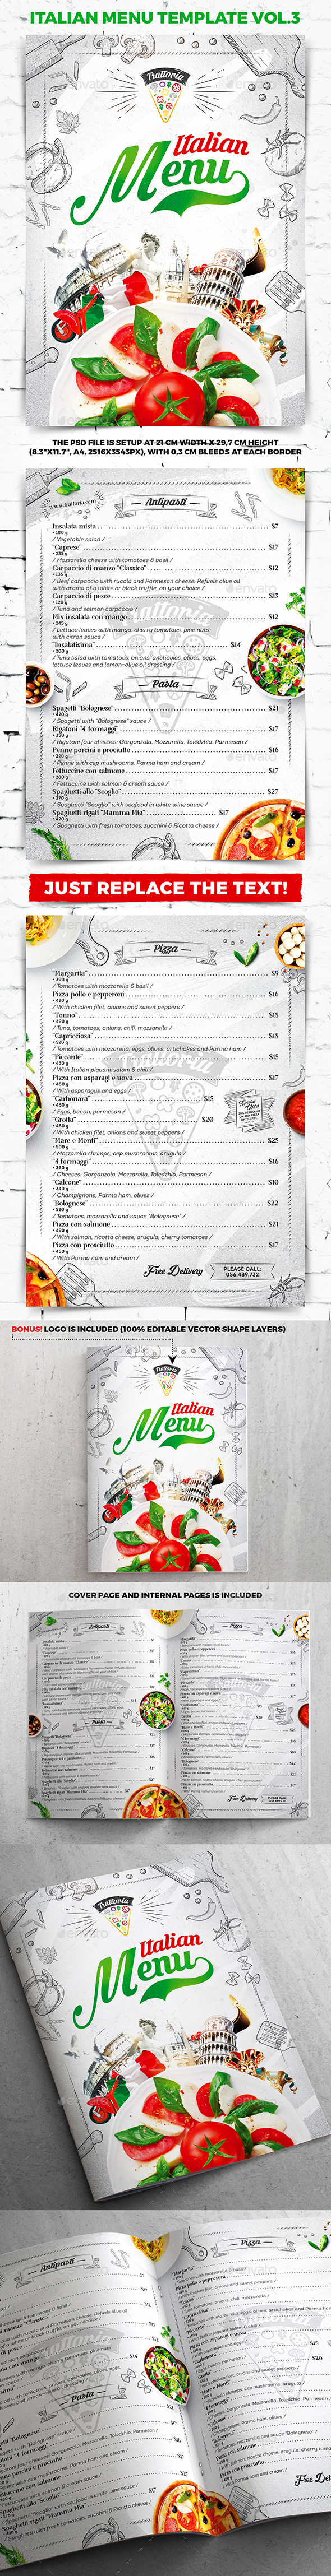 Italian Menu Template vol.3 - Food Menus Print Templates